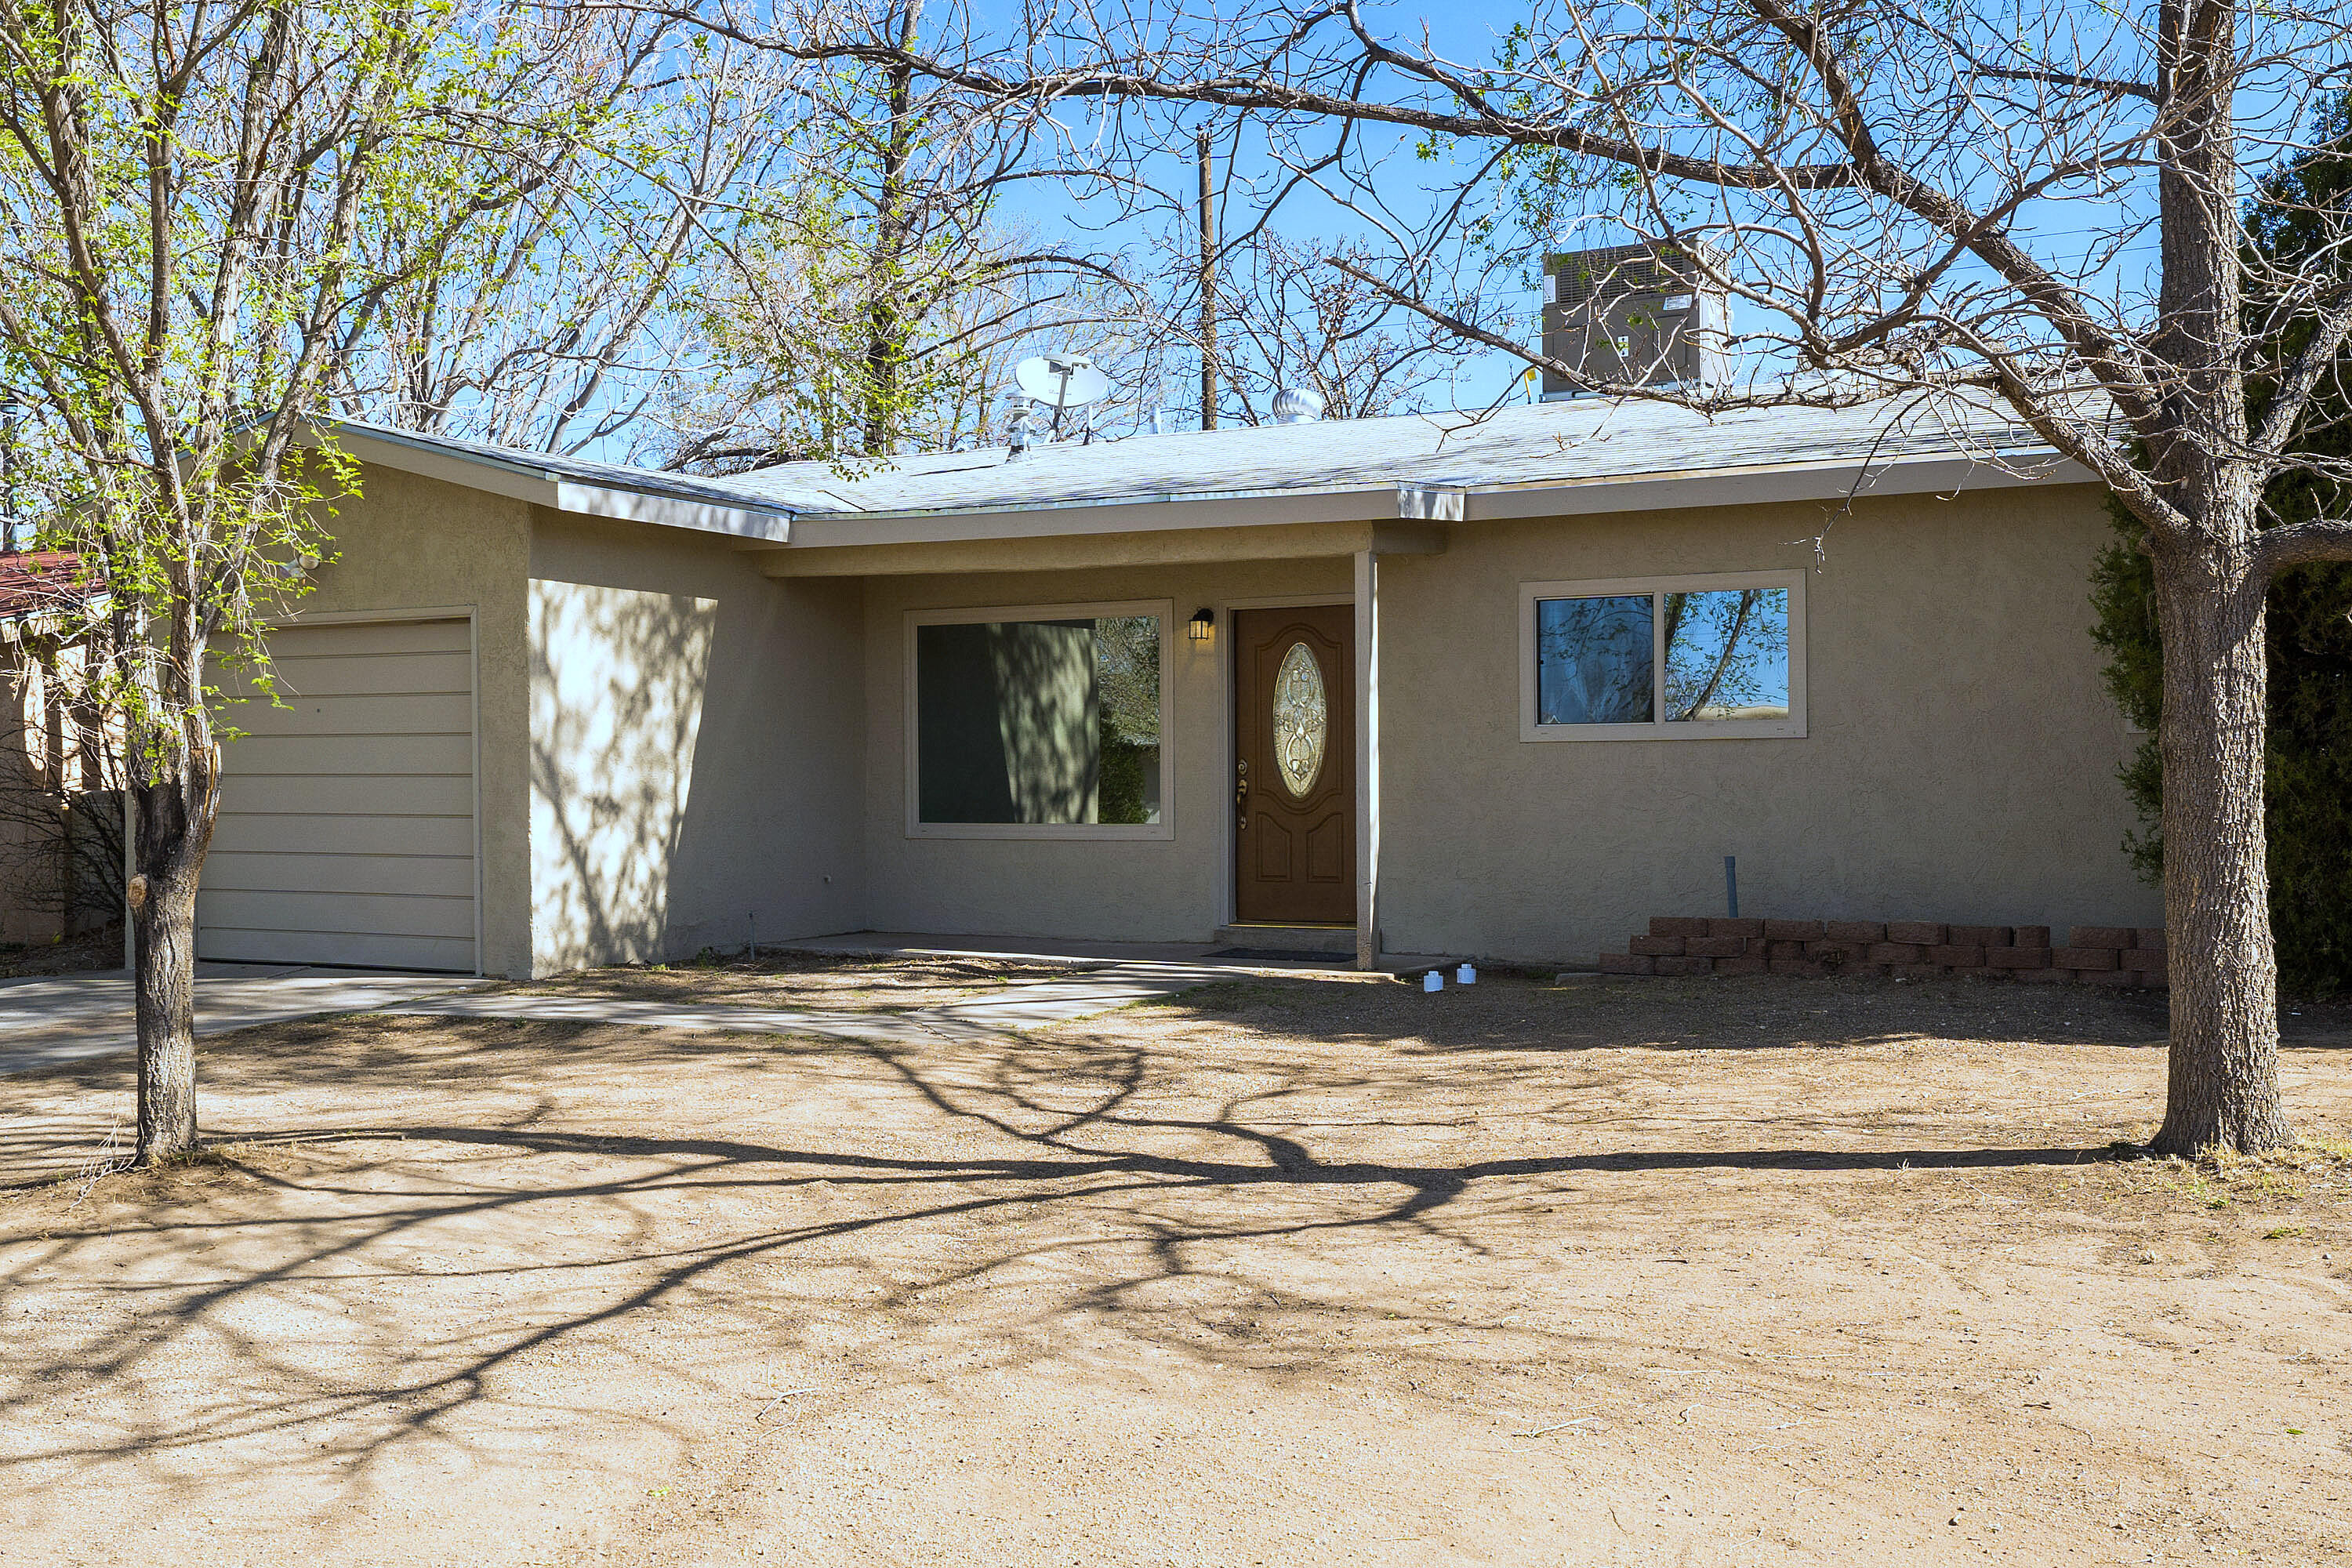 Single Story, detached 3 BR 1.75 BA 1 car garage on Constitution just West of Juan Tabo.  Updated, Refrigerate Air, New Kitchen and the kitchen appliances are included. Soft Close drawers, quartz counters.  Easy to maintain floors, updated bathrooms, Walled back yard!  NO HOA, bring your pets and your furniture because this is Move In Ready. Seller can accommodate a quick closing if needed.